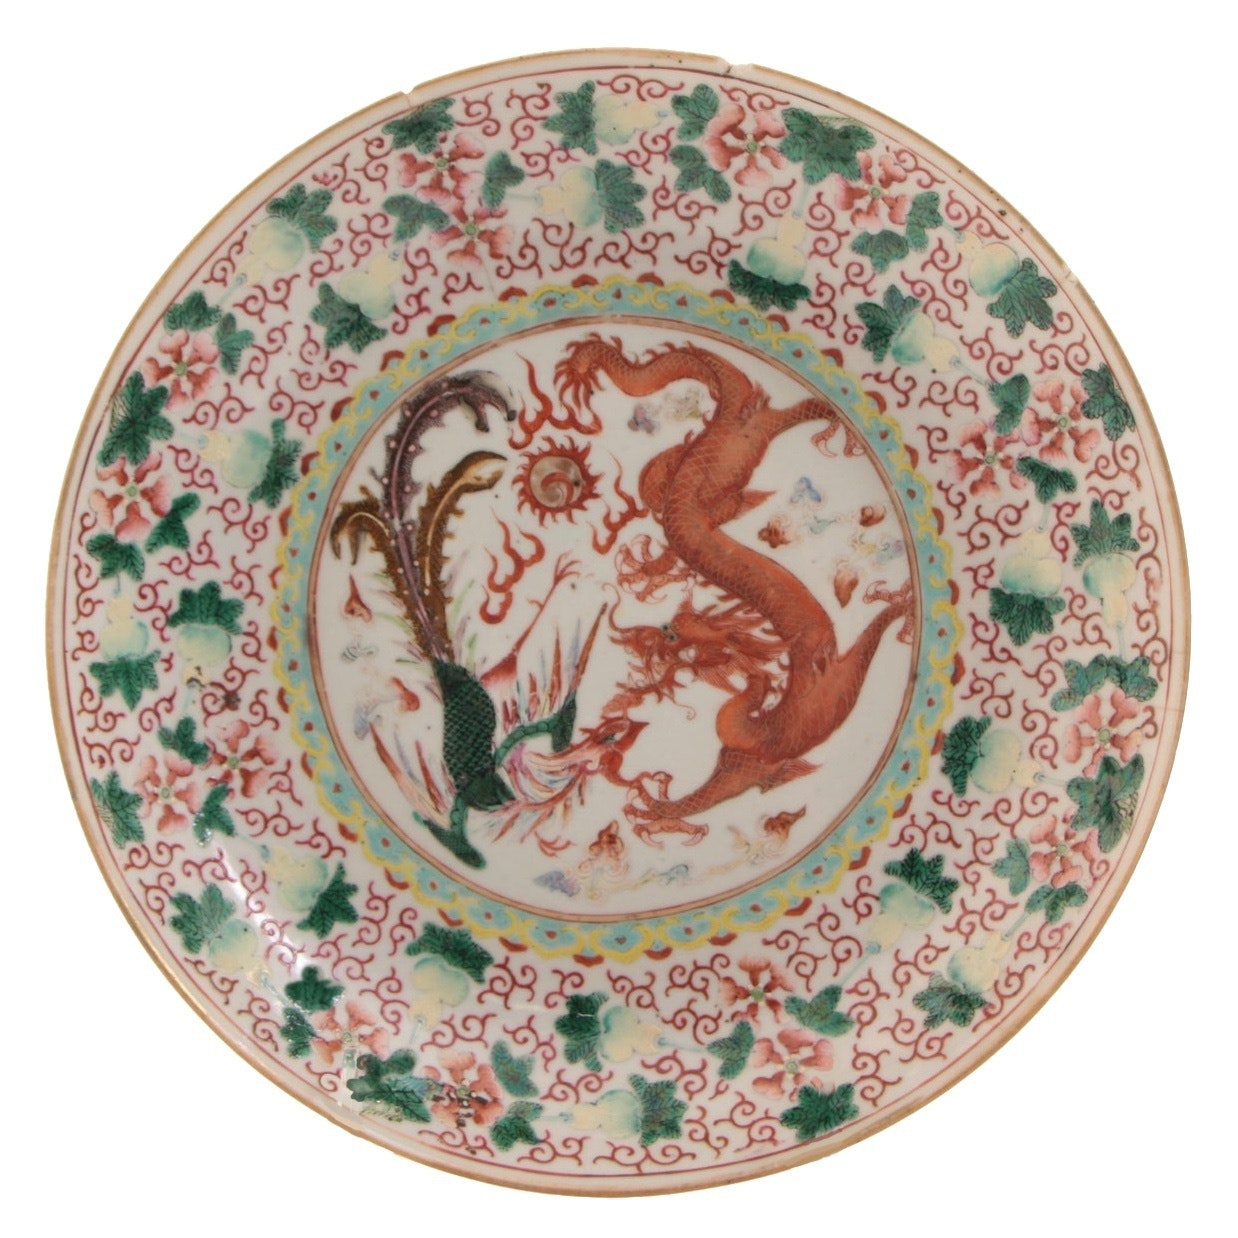 Chinese Polychrome Porcelain Plate with Dragon and Phoenix, Qing Dynasty